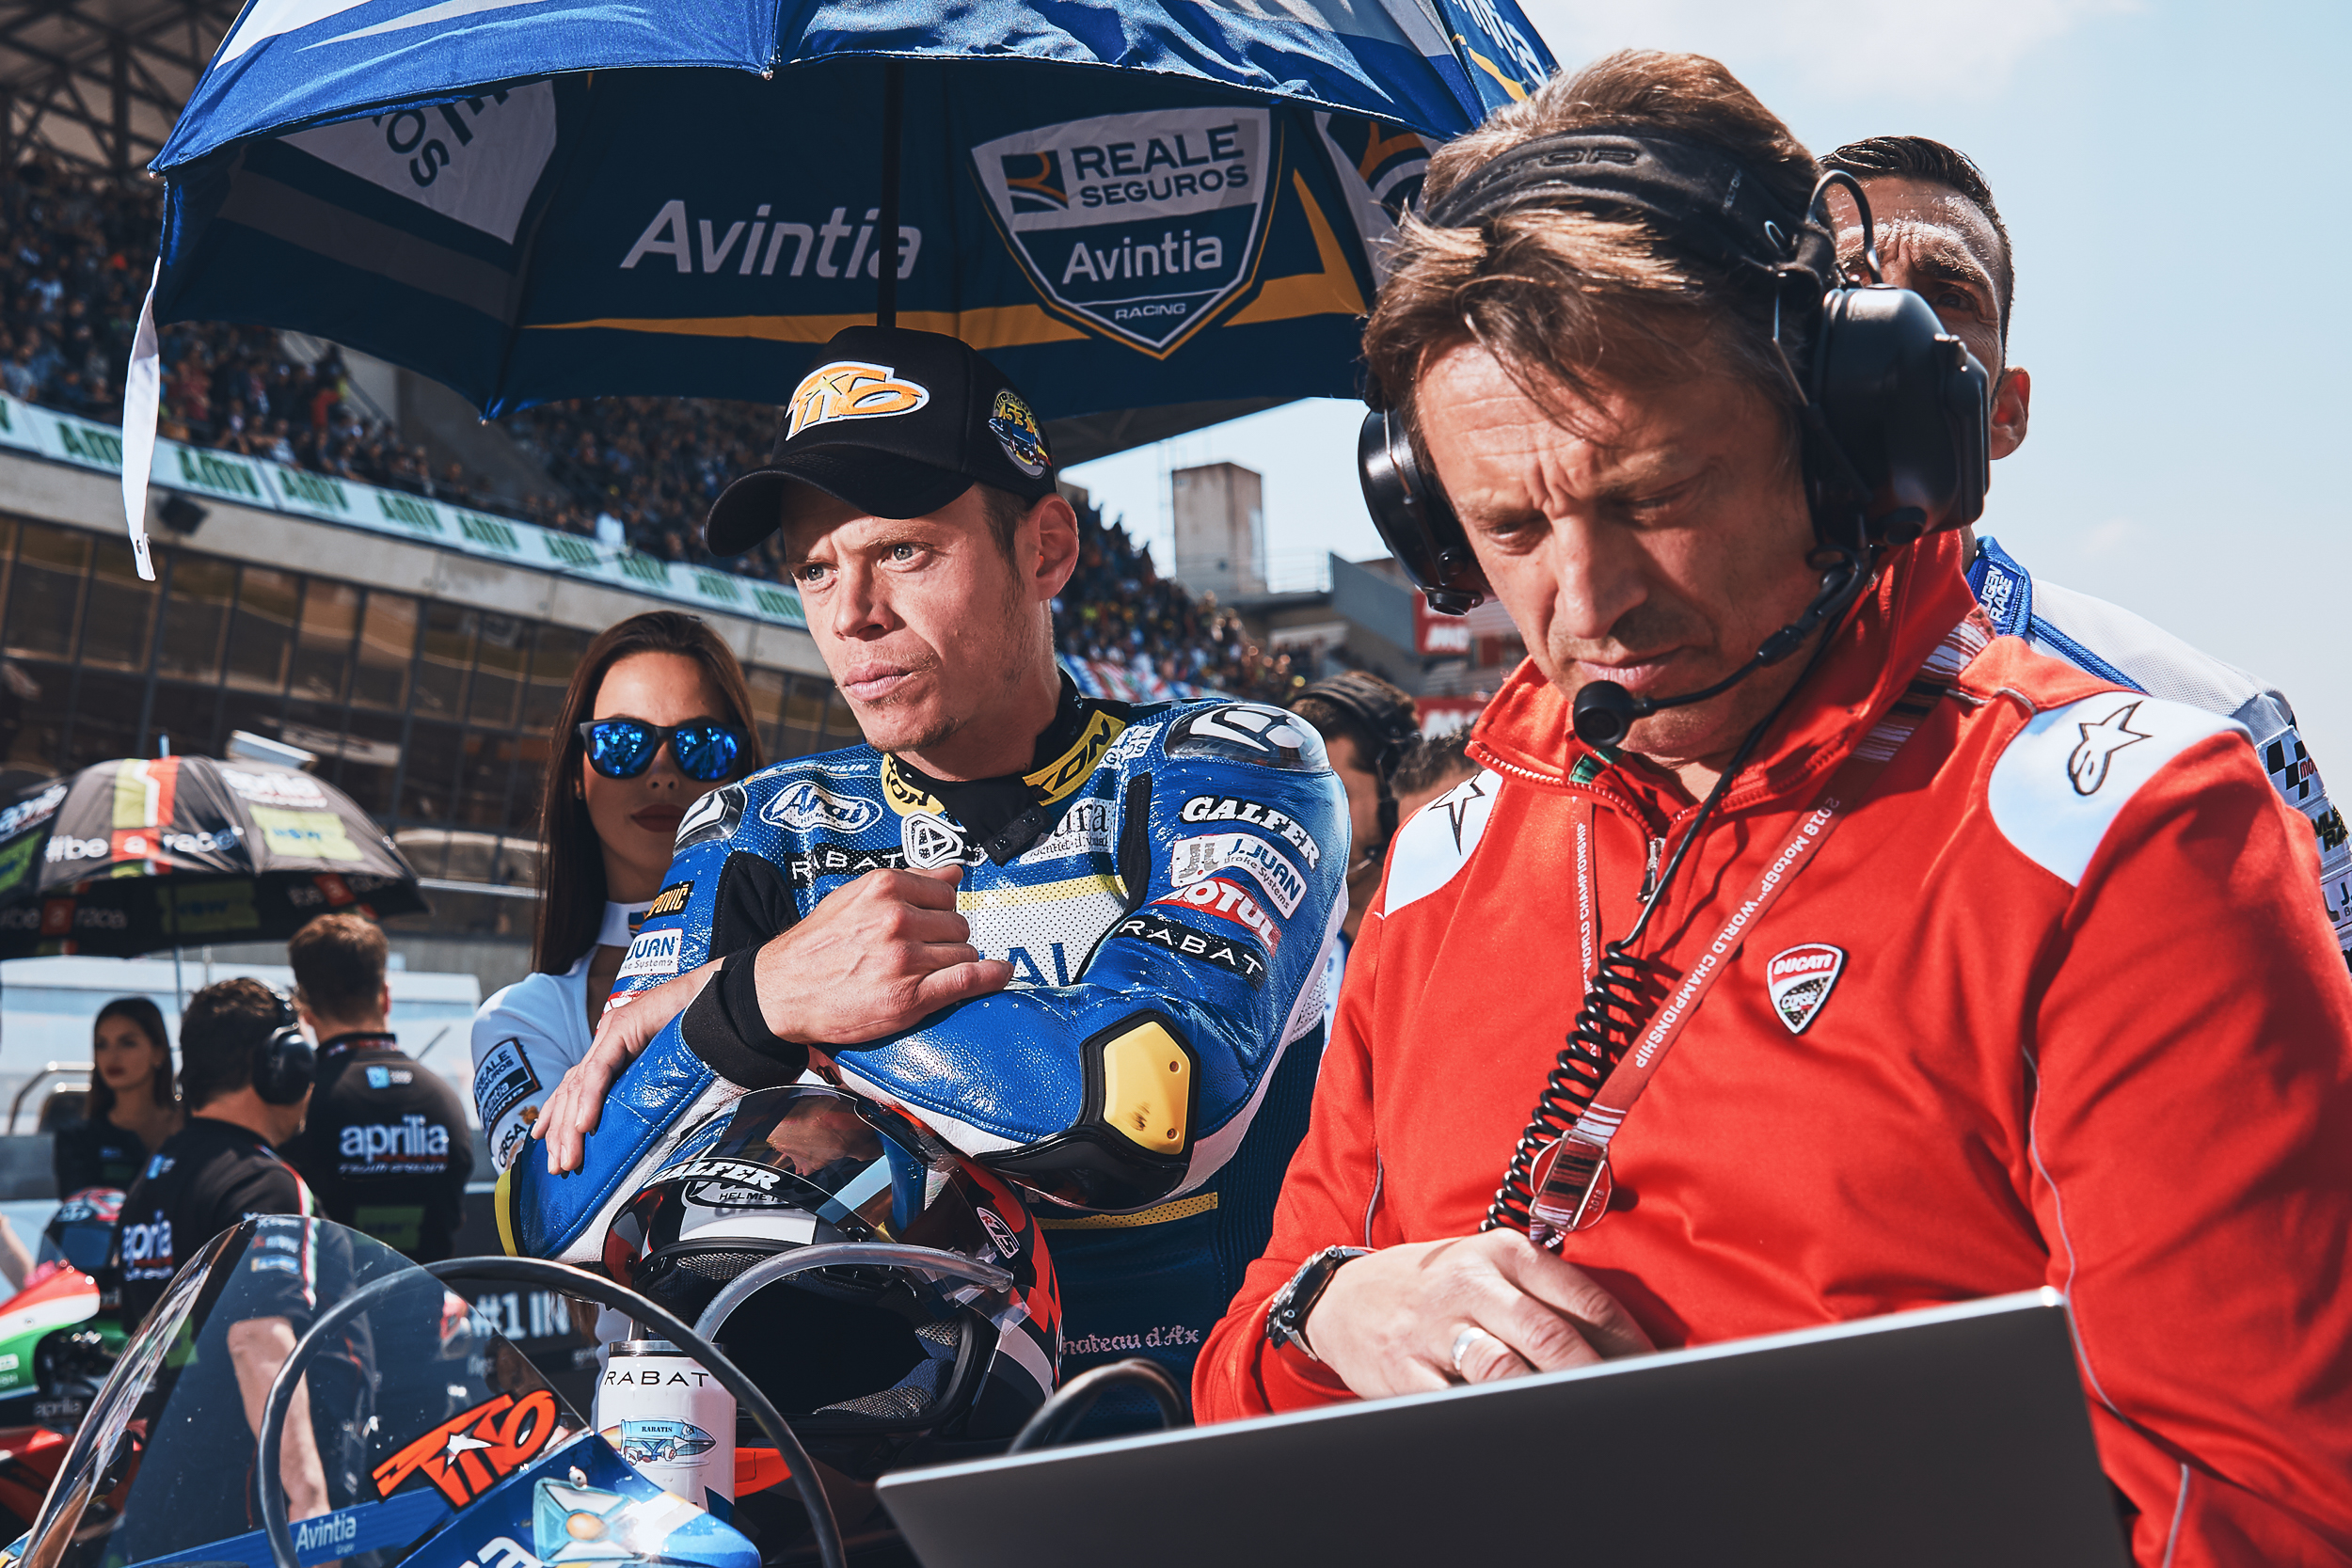 NOT ALL RIDERS LISTEN TO MUSIC ON THE GRID